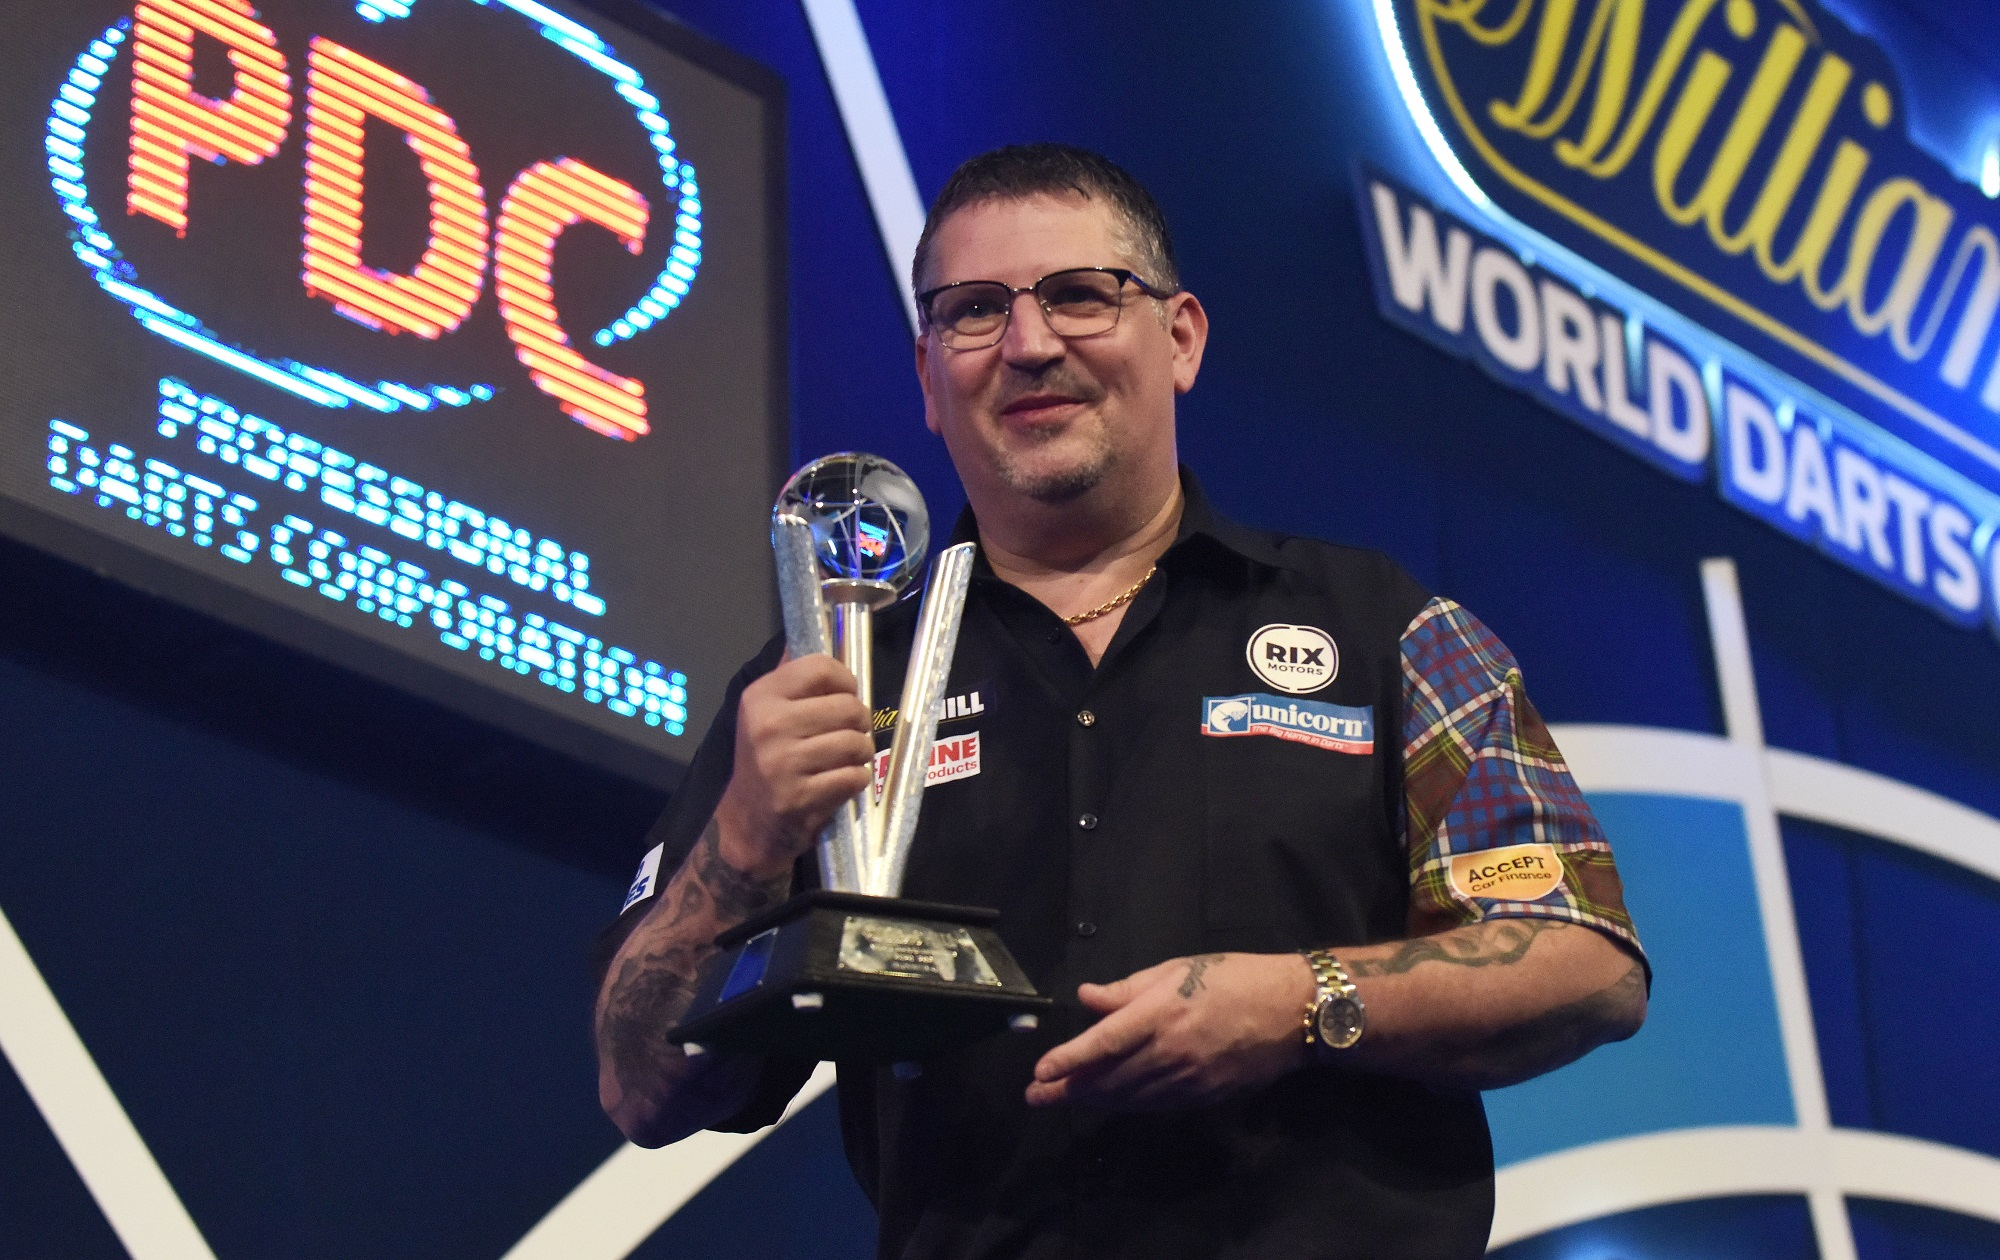 Anderson denied third World title at Ally Pally